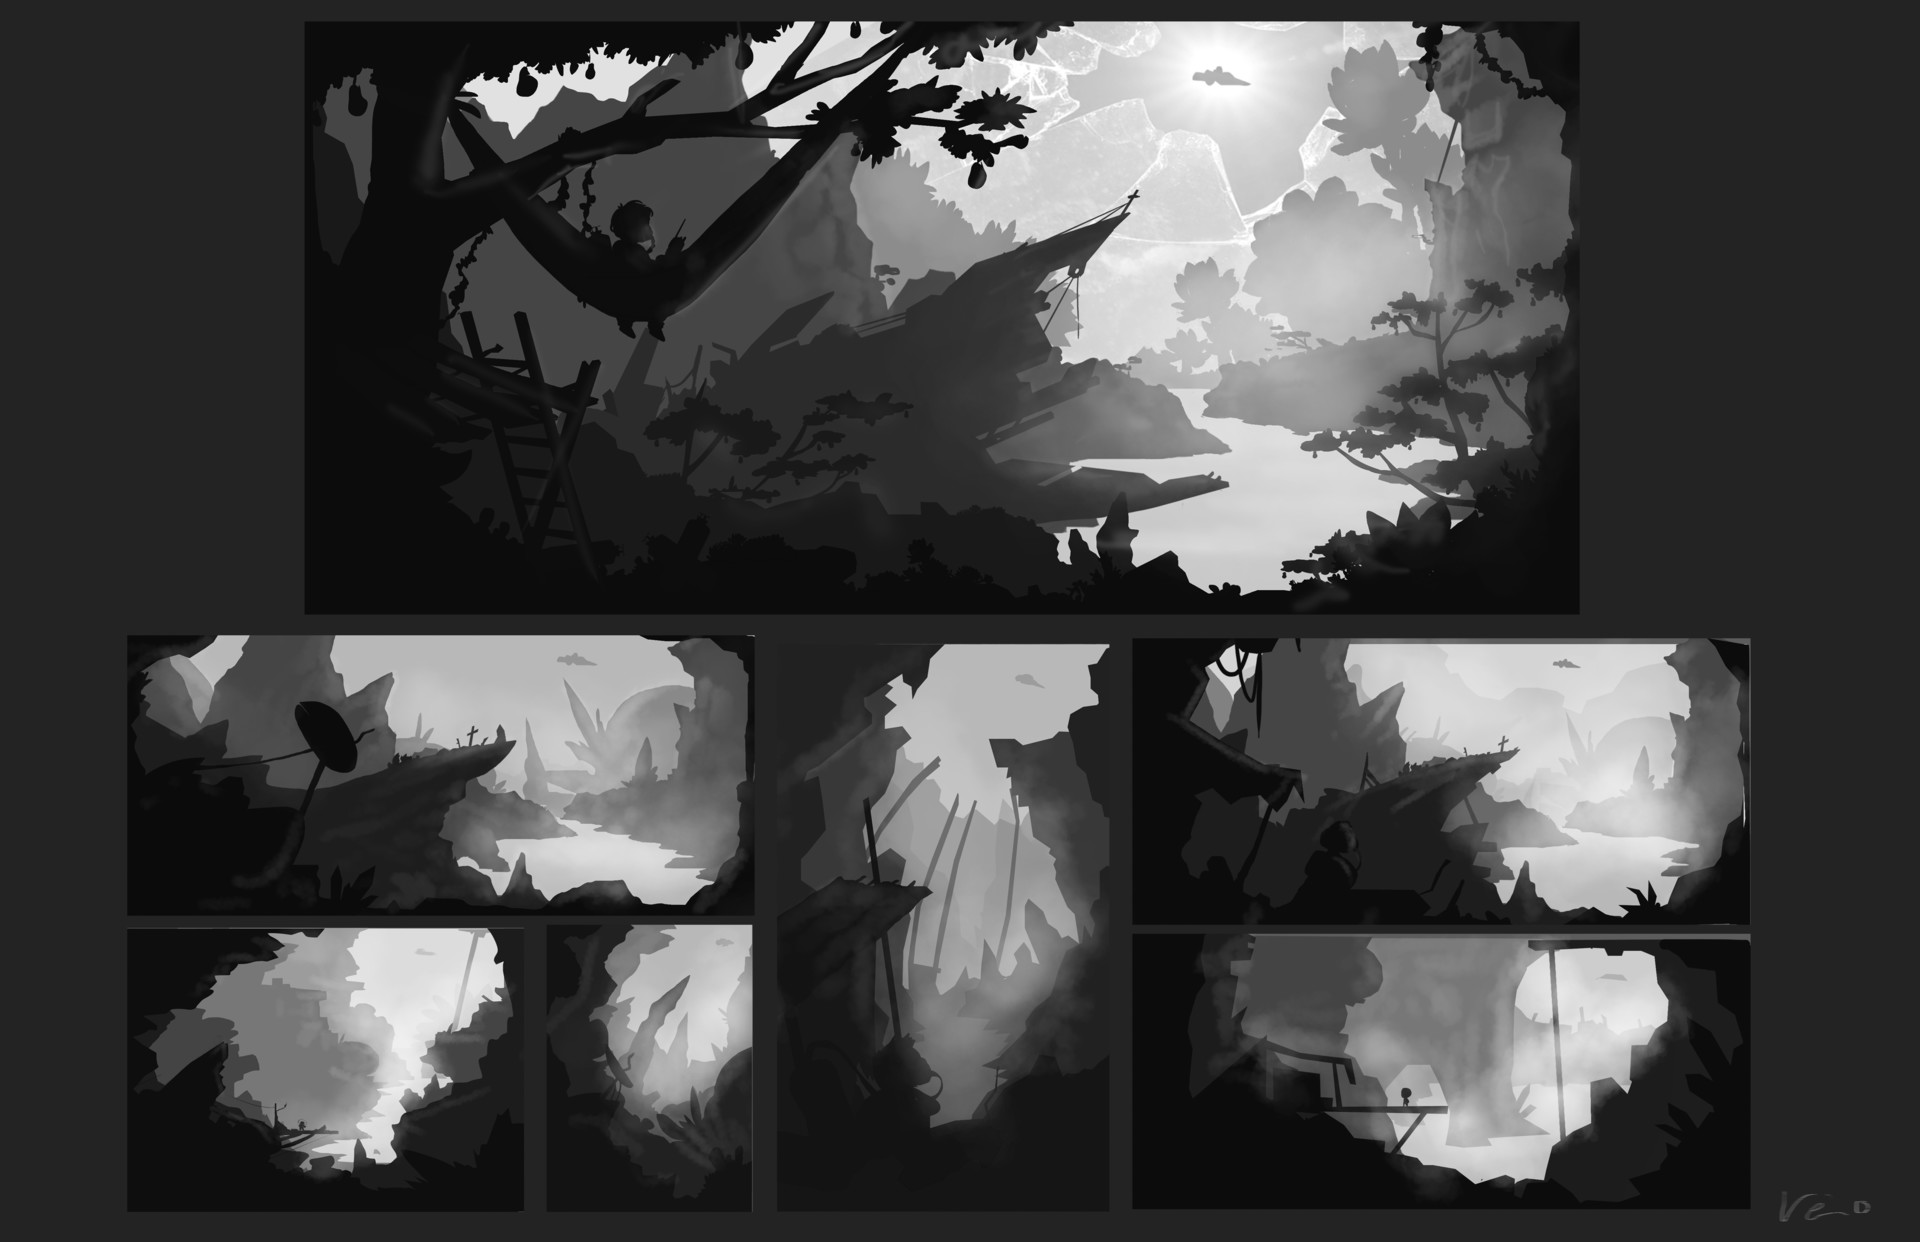 Exploration thumbnails for the illustration above.